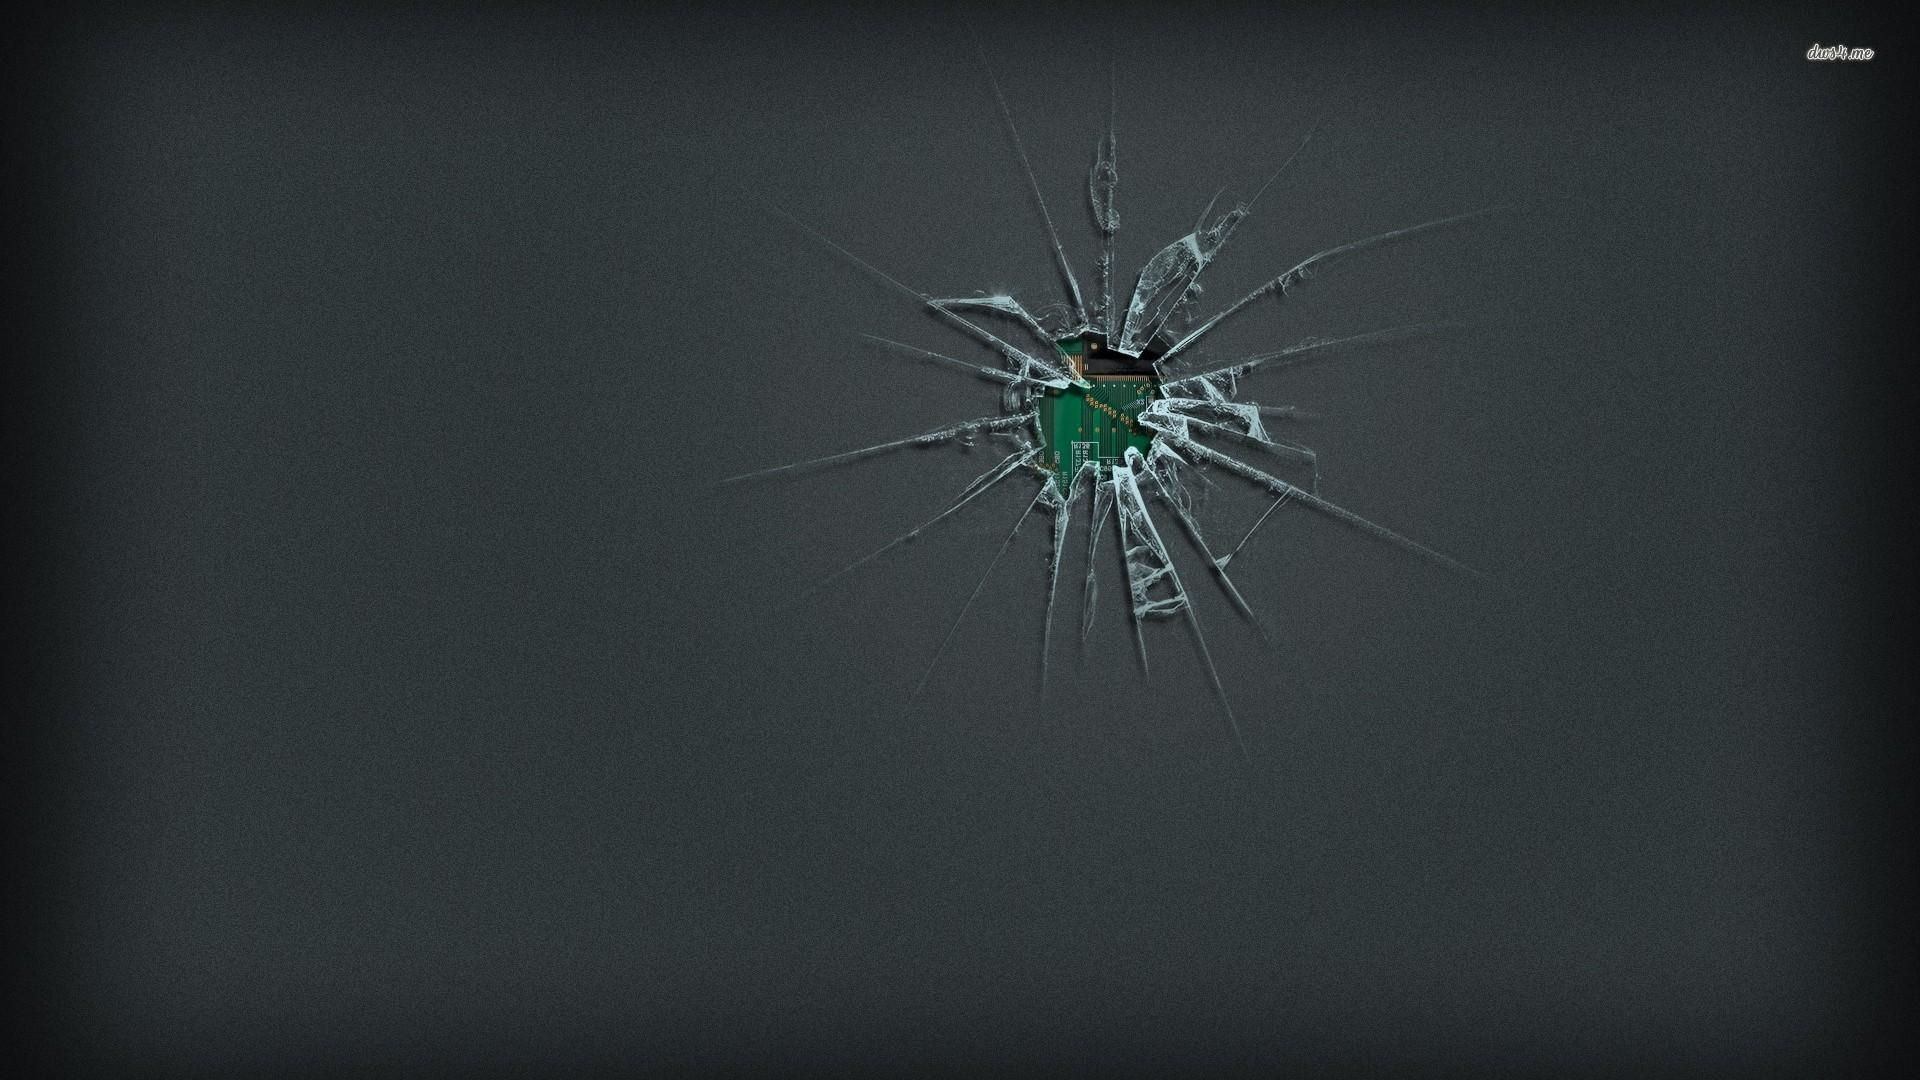 Broken-iphone-screen-Group-1920×1080-Broken-iphone-screen-Ad-wallpaper-wpc9203233